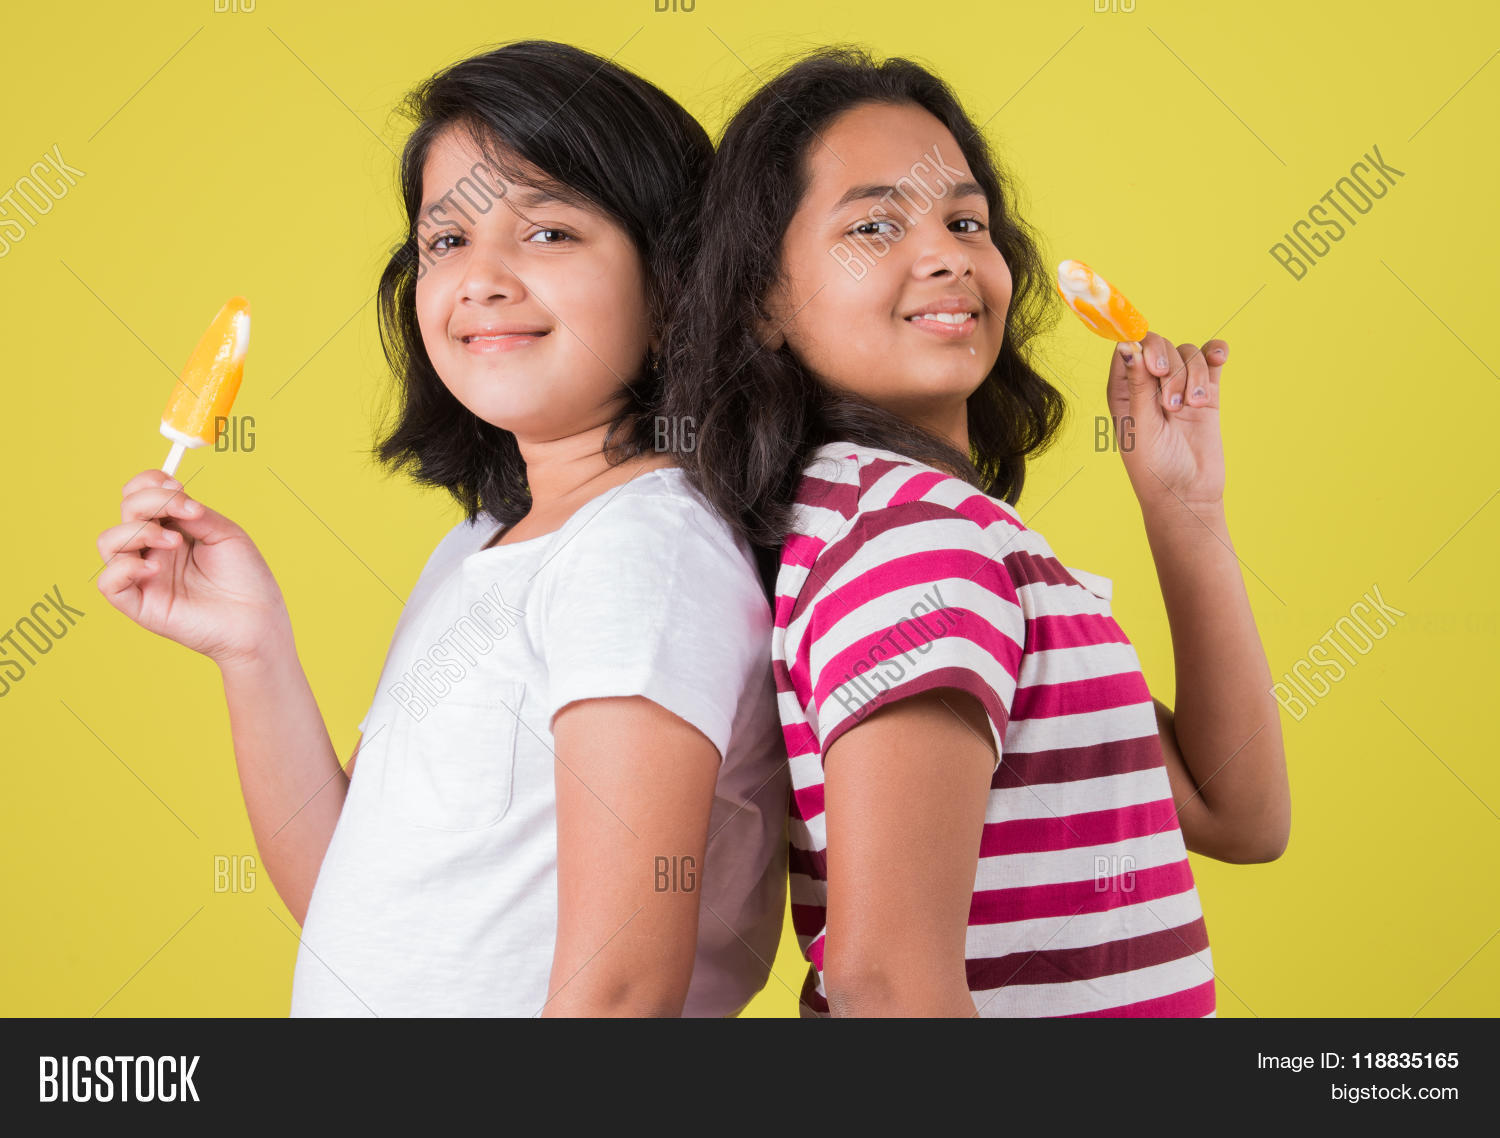 Two Indian Girls Eating Ice Cream Or Candy Asian Girl And